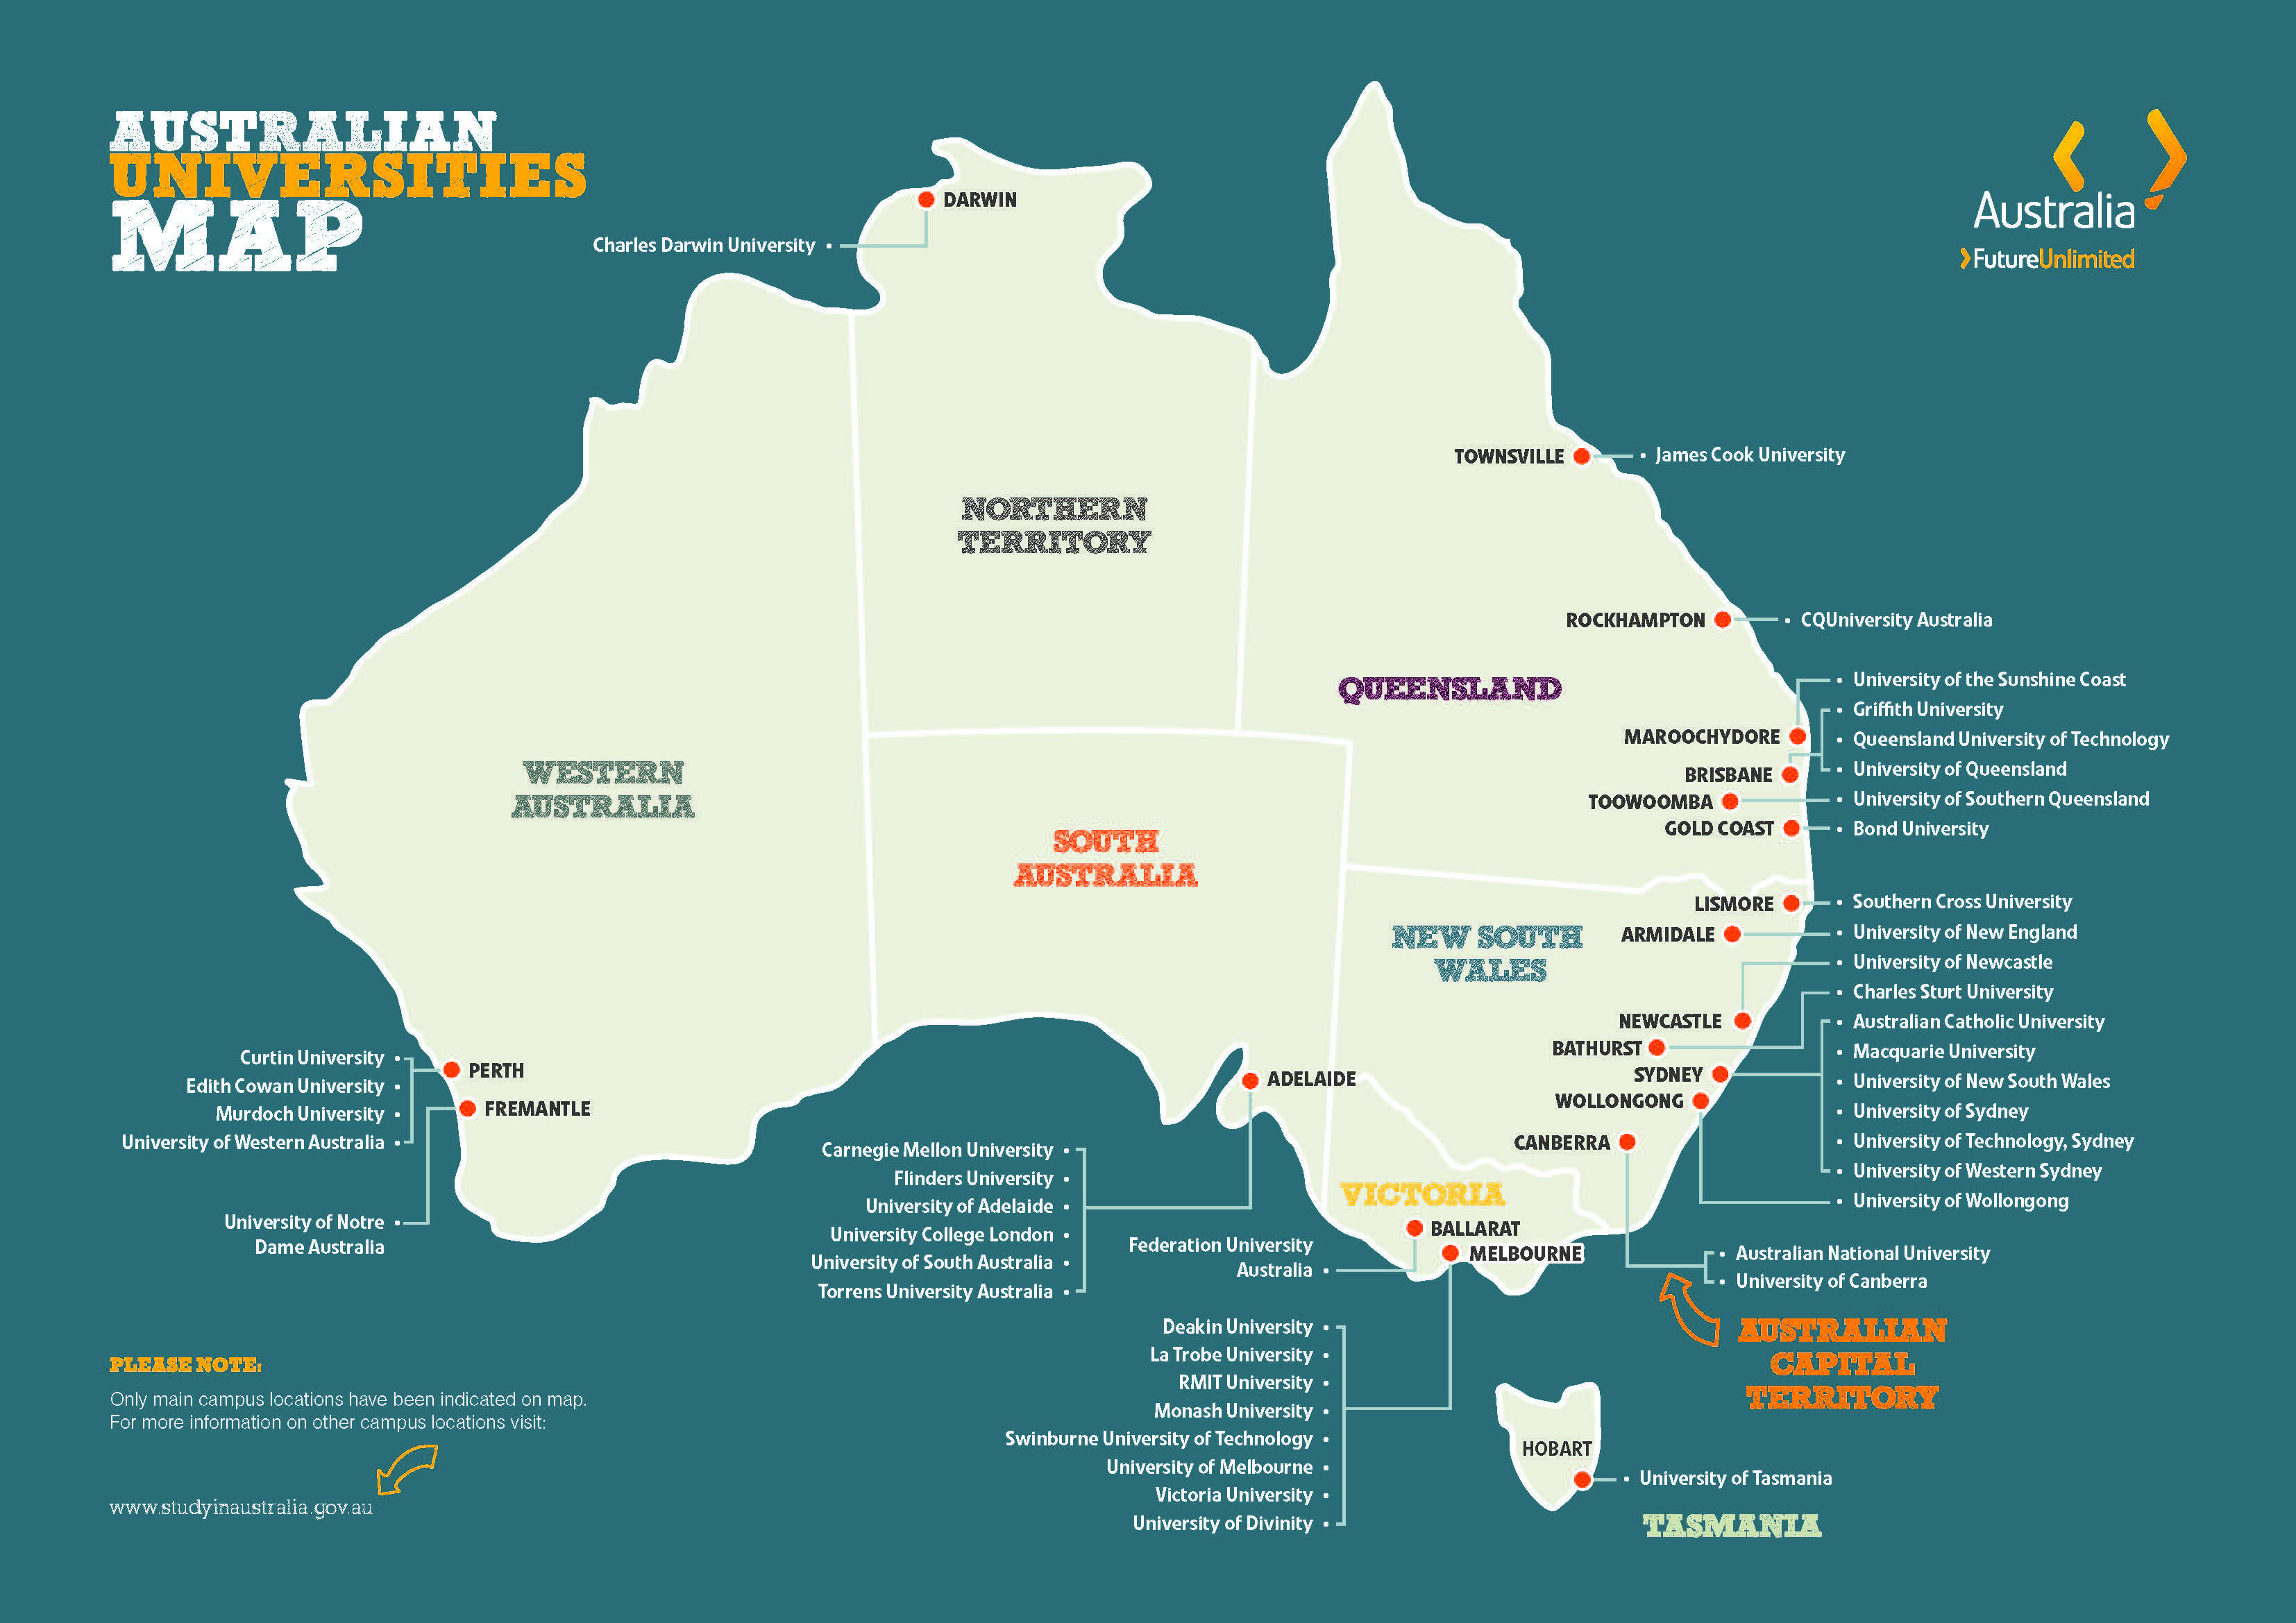 Was Tasmania Joined To Australia Australian Universities Map May Large